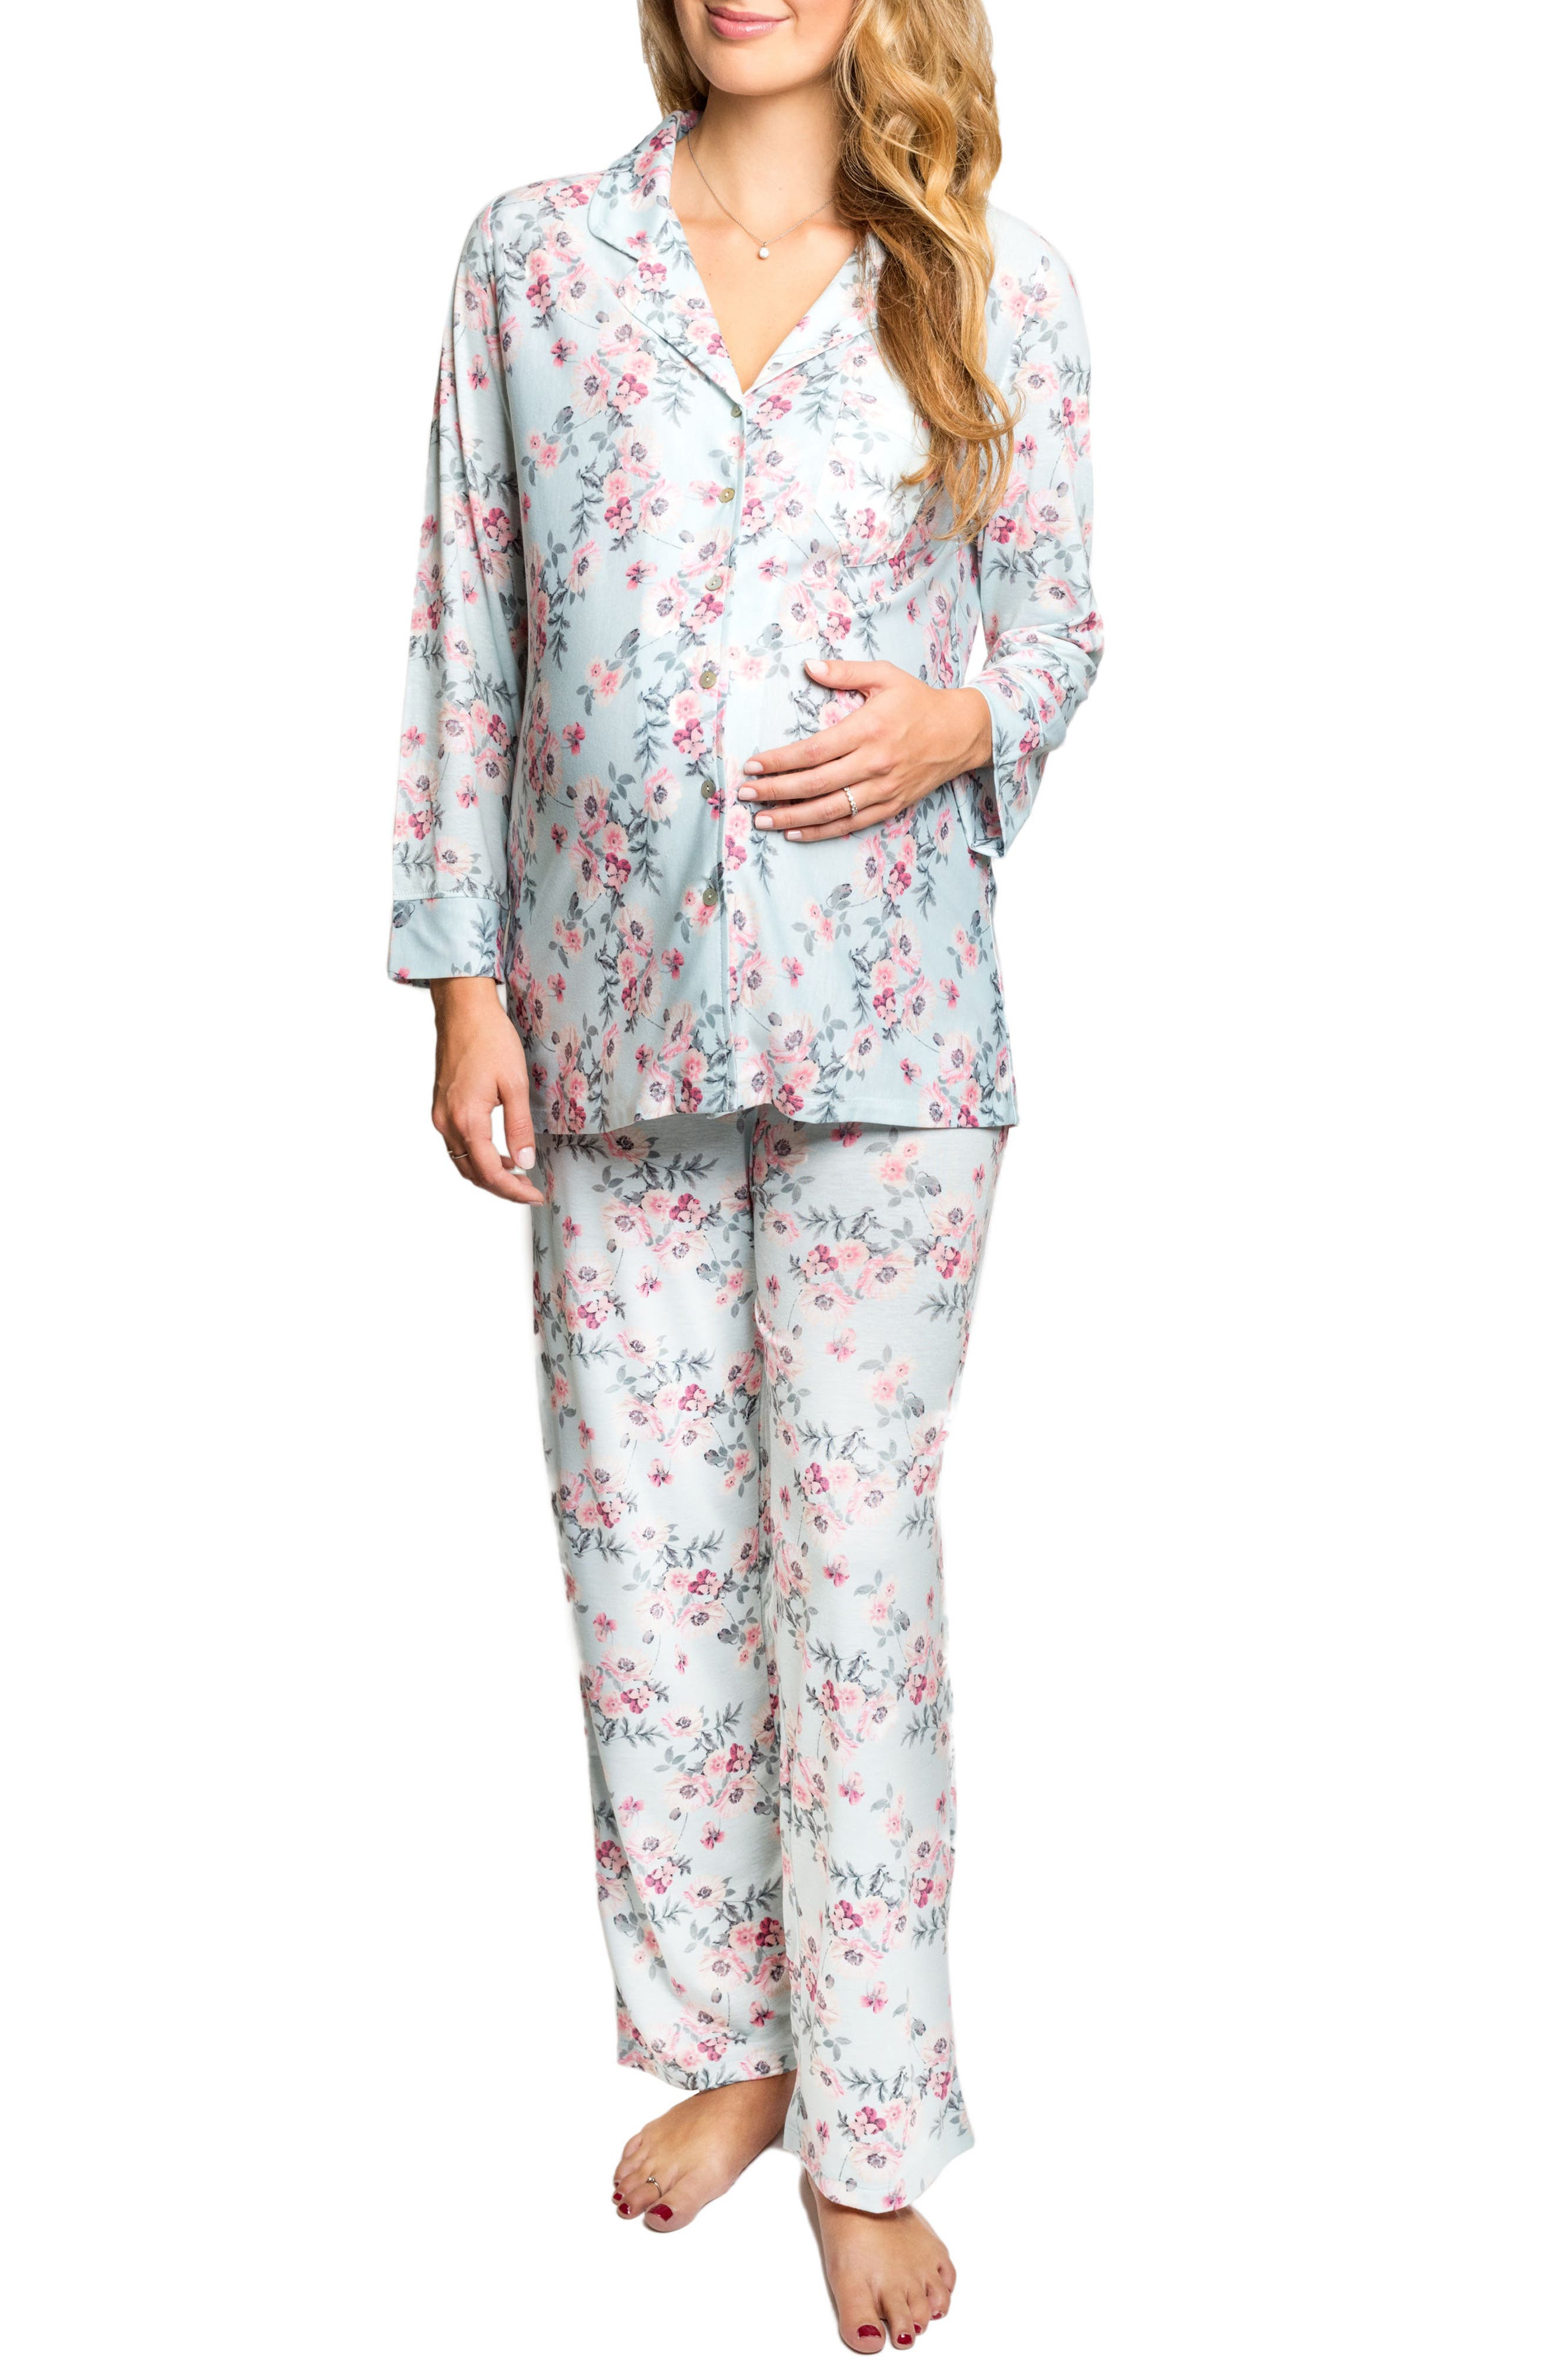 Everly Grey Helena Maternity/Nursing Pajamas